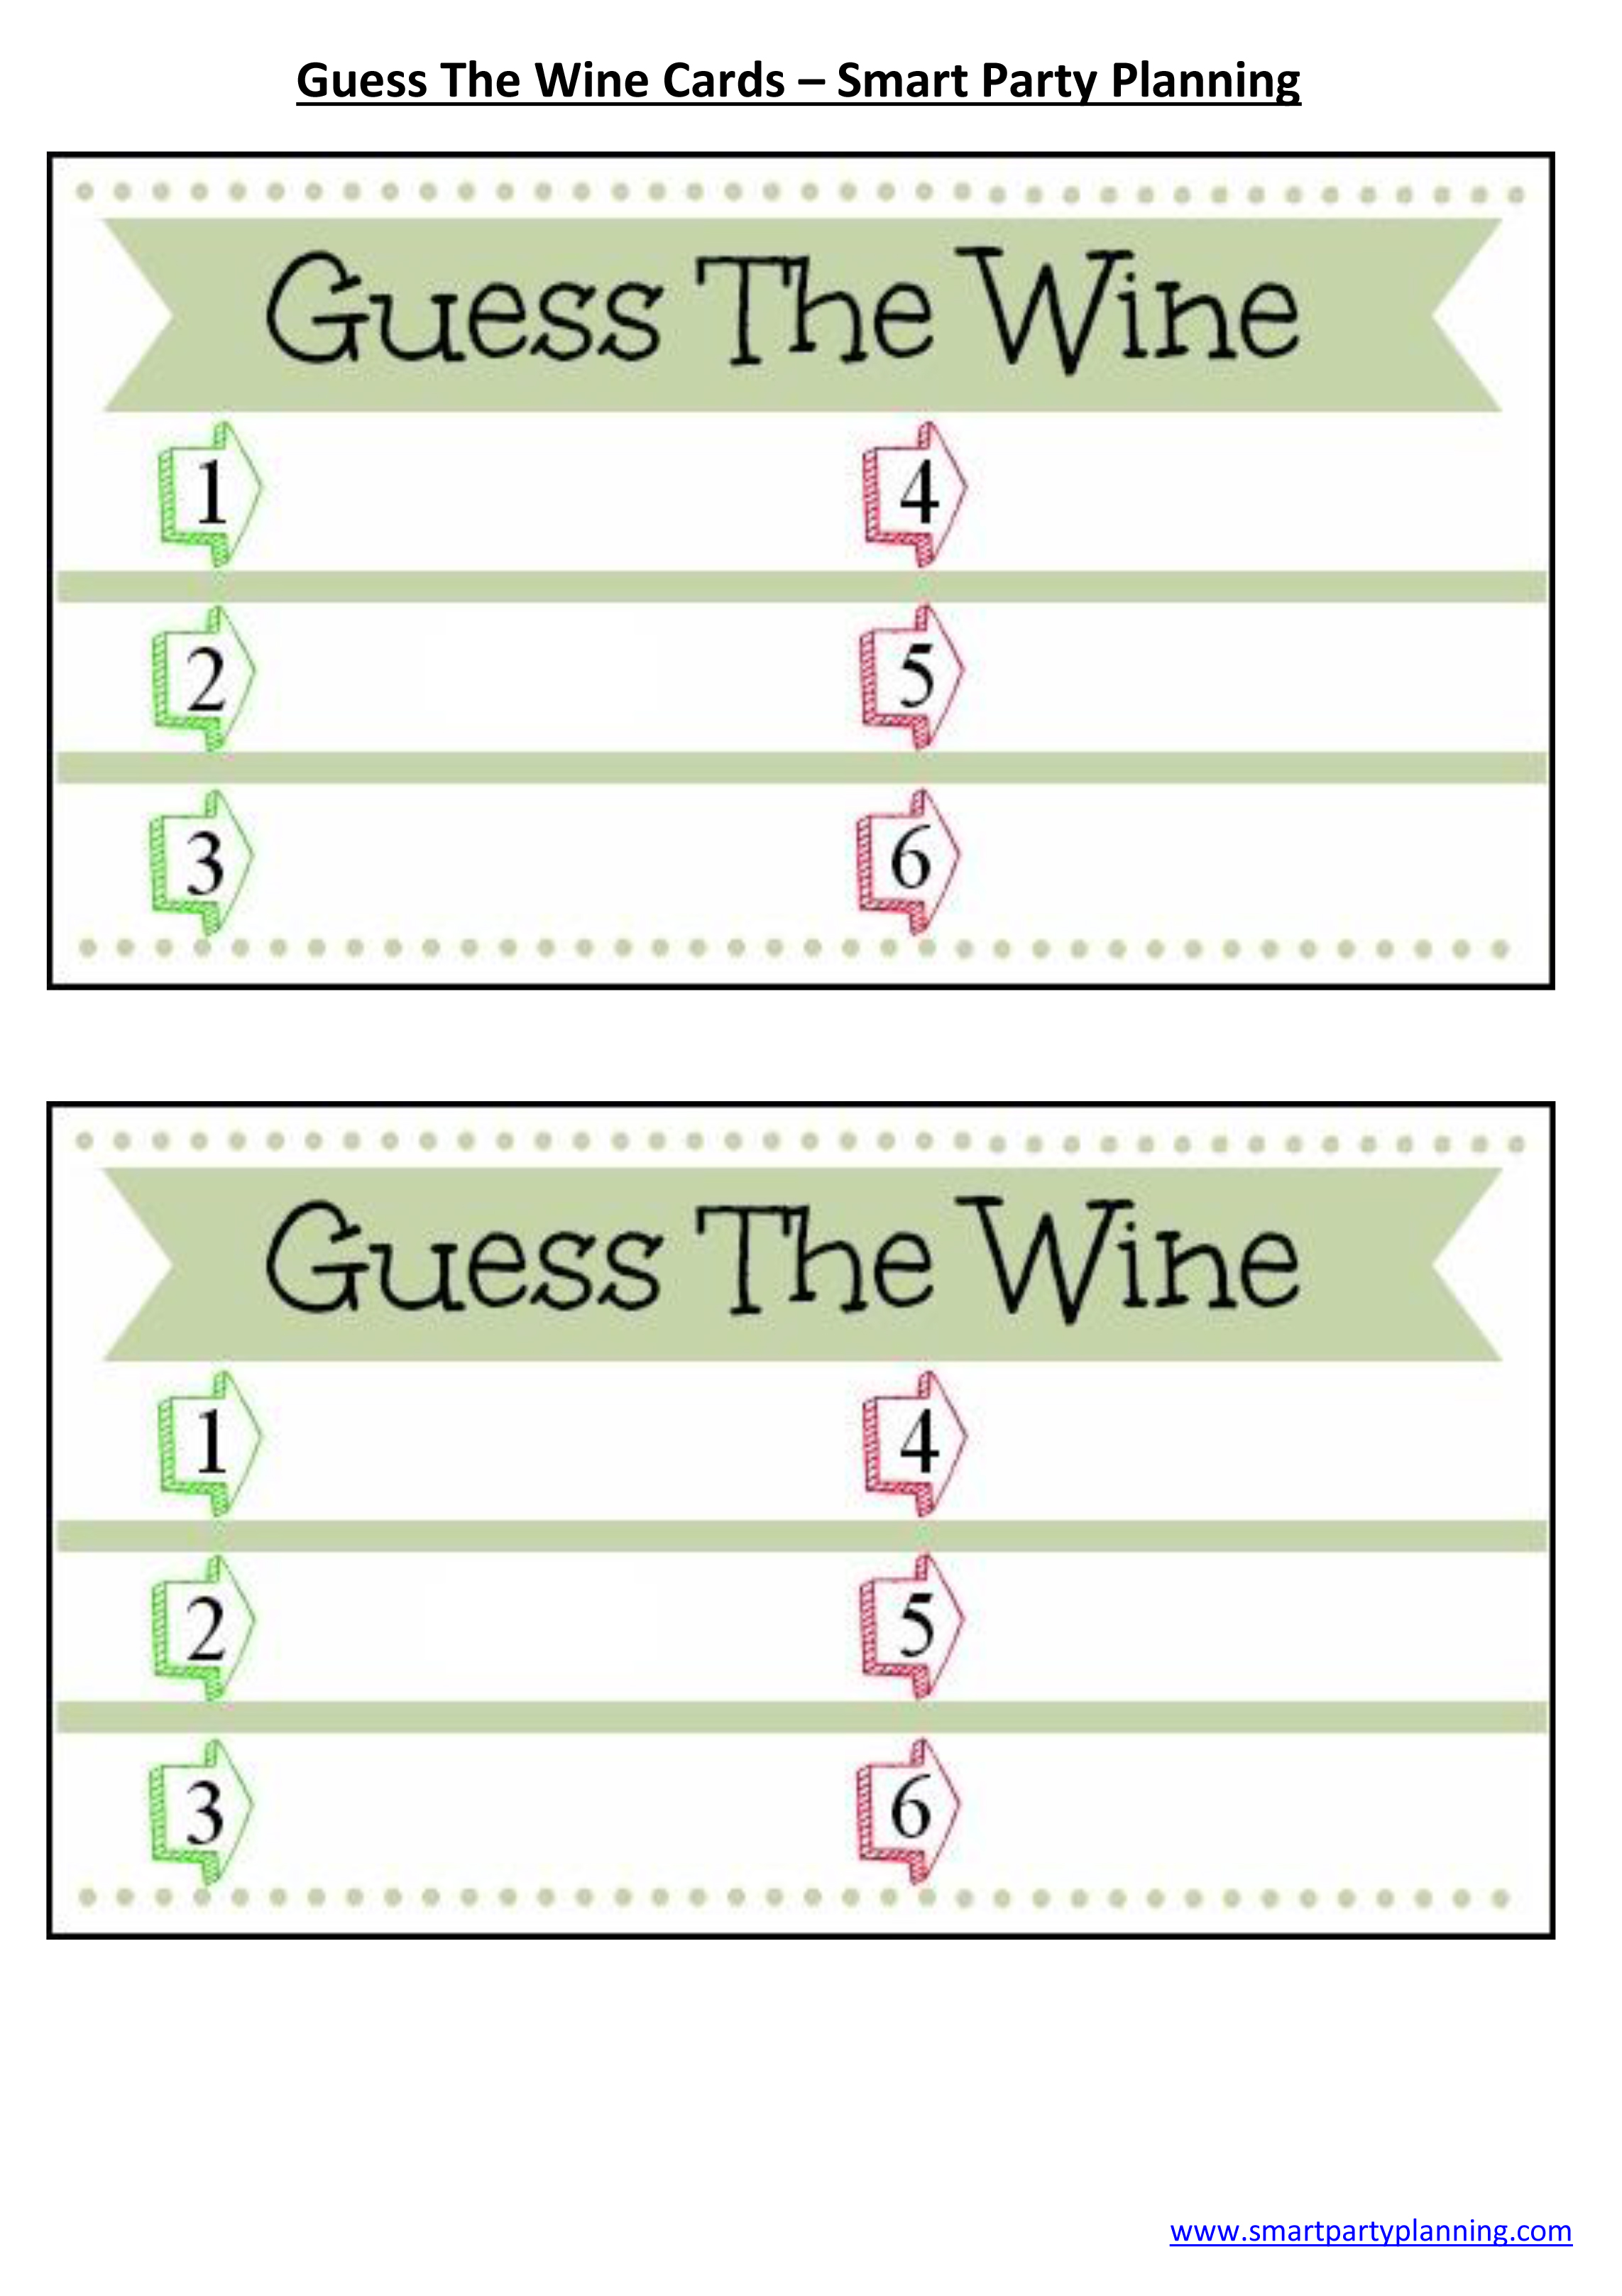 photograph regarding Wine Tasting Sheets Printable referred to as Host Your Particular Wine Tasting -